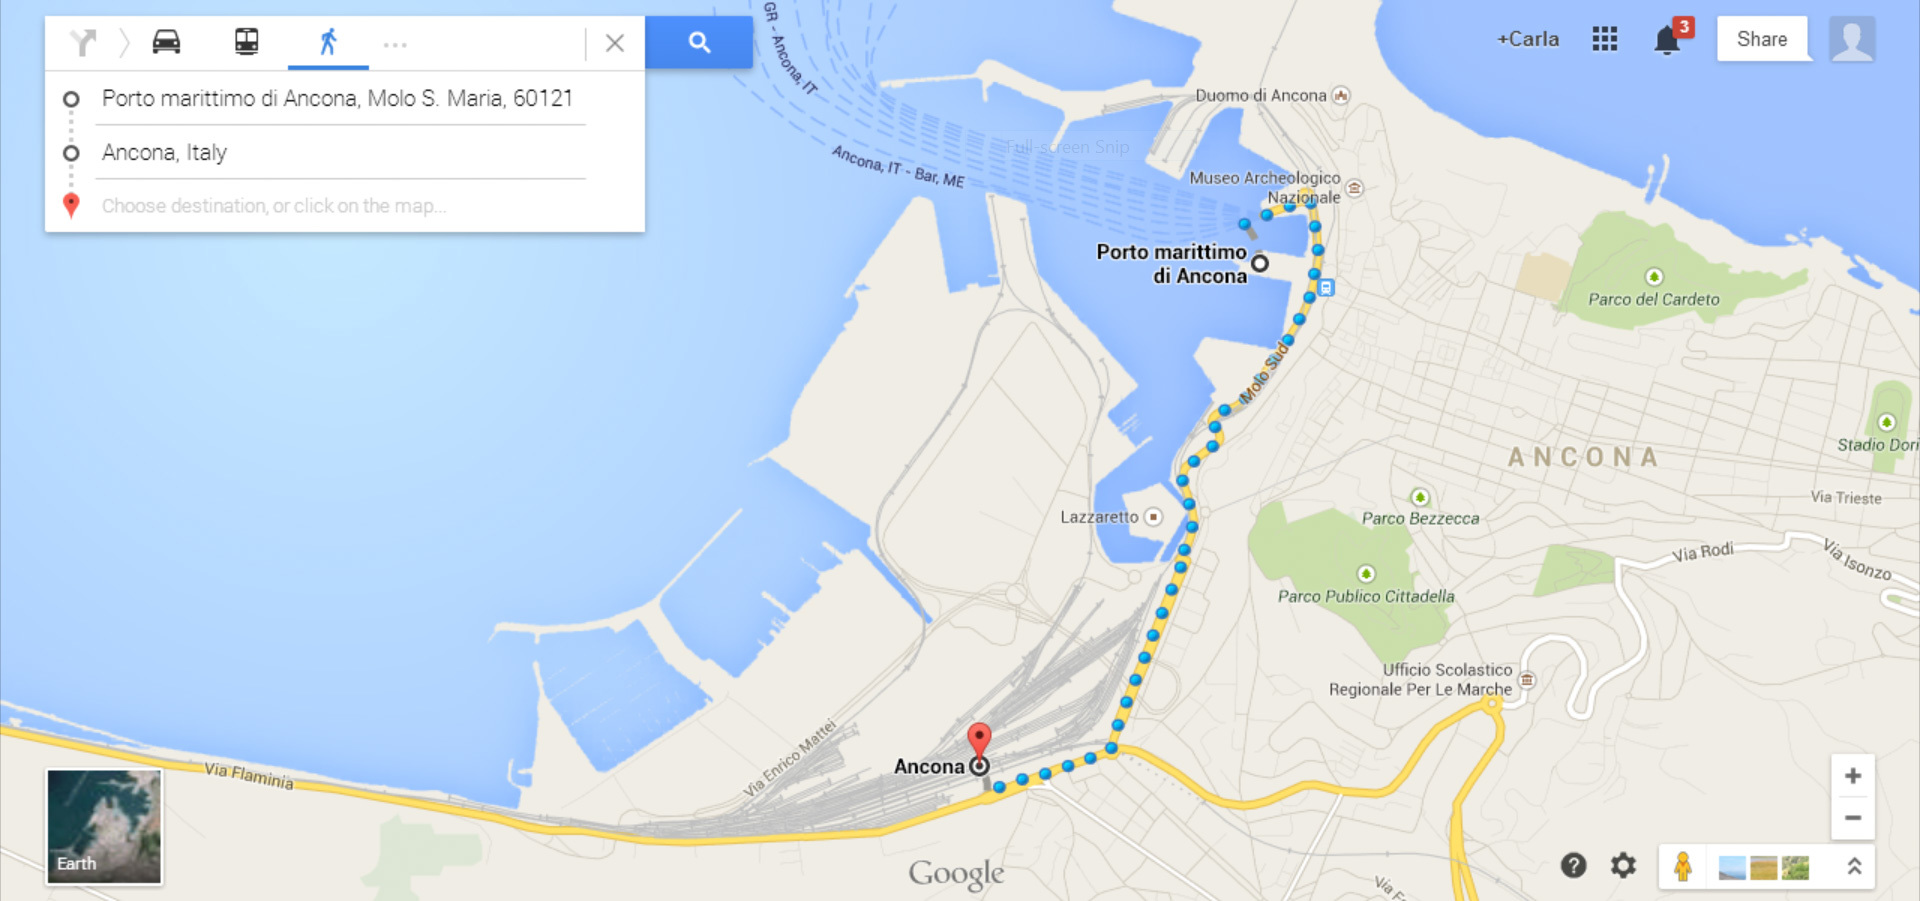 ancona ferry to train station map_edited.jpg